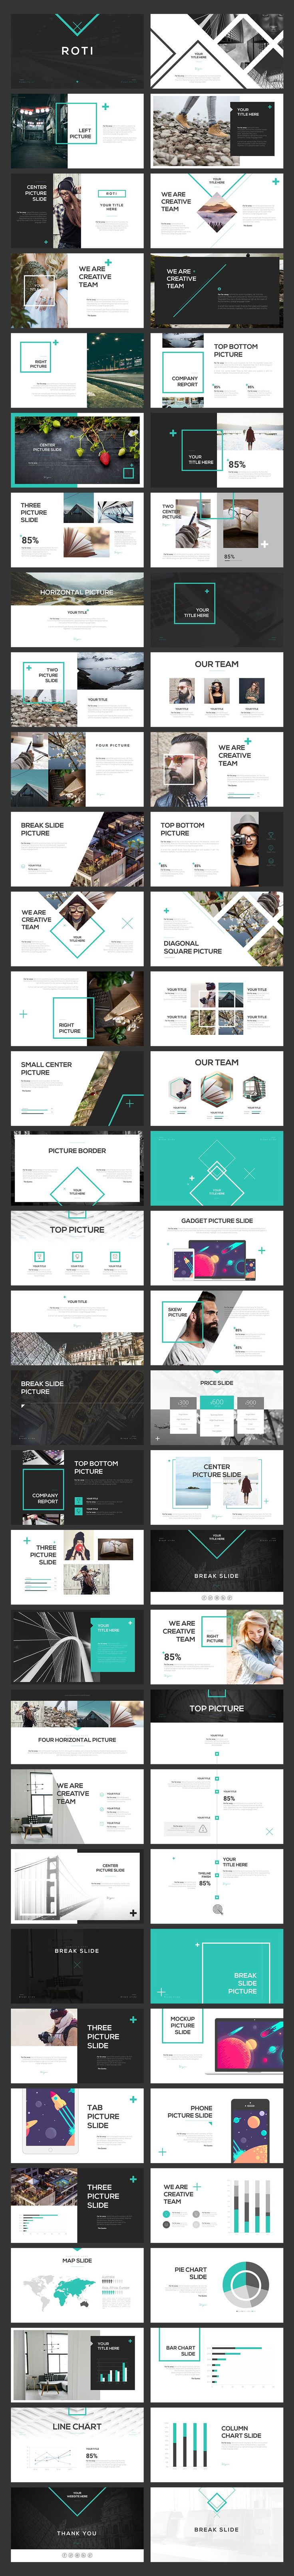 ROTI Powerful and Amazing PowerPoint Template Download Now #Presentation #slides…